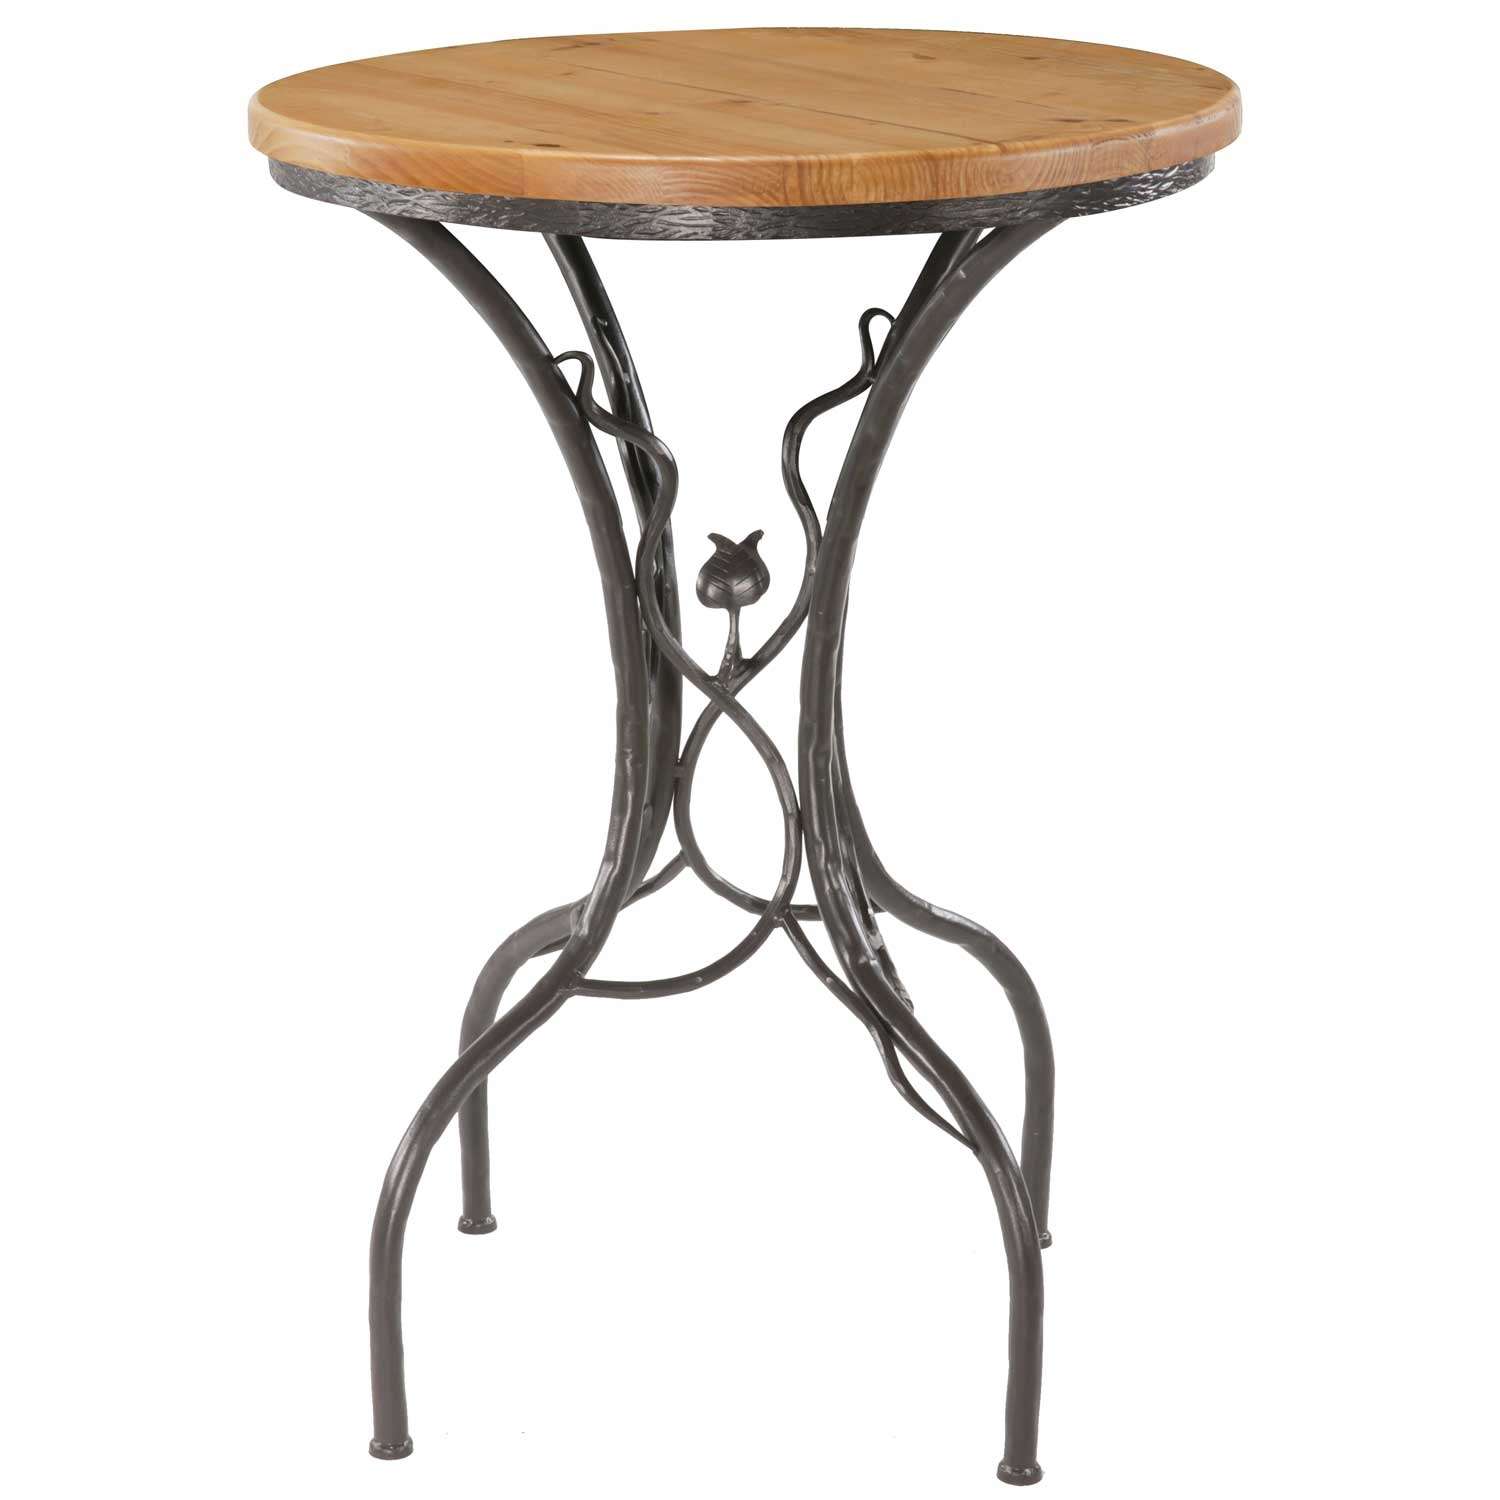 Sassafras Bar Height Table With In Round Top - Stone top counter height table